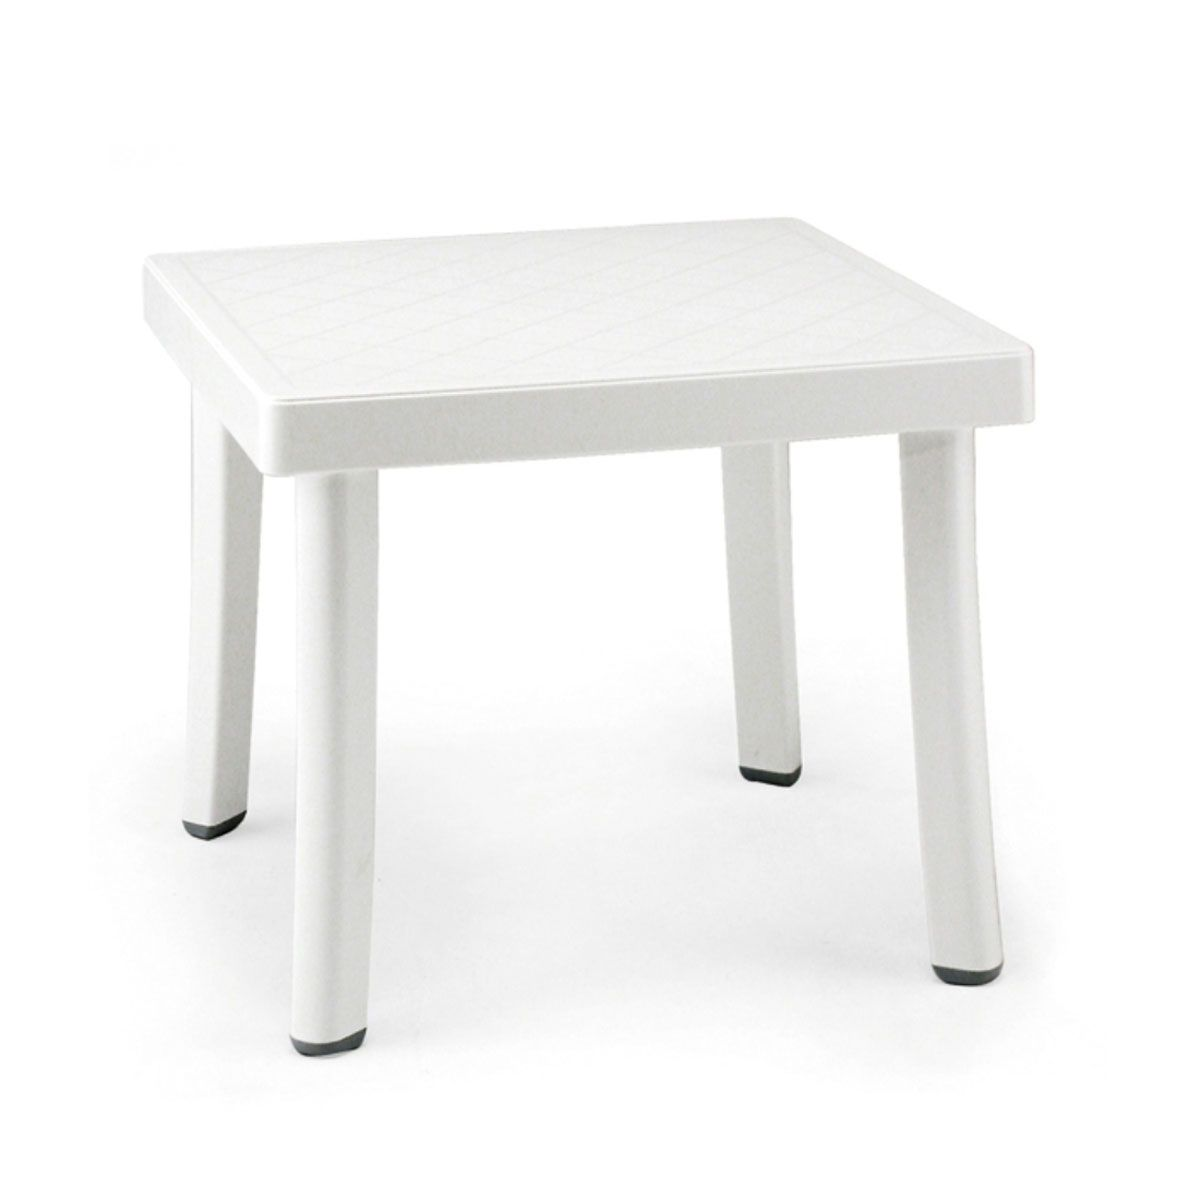 Table basse empilable nardi rodi tables basses design for Table d exterieur design